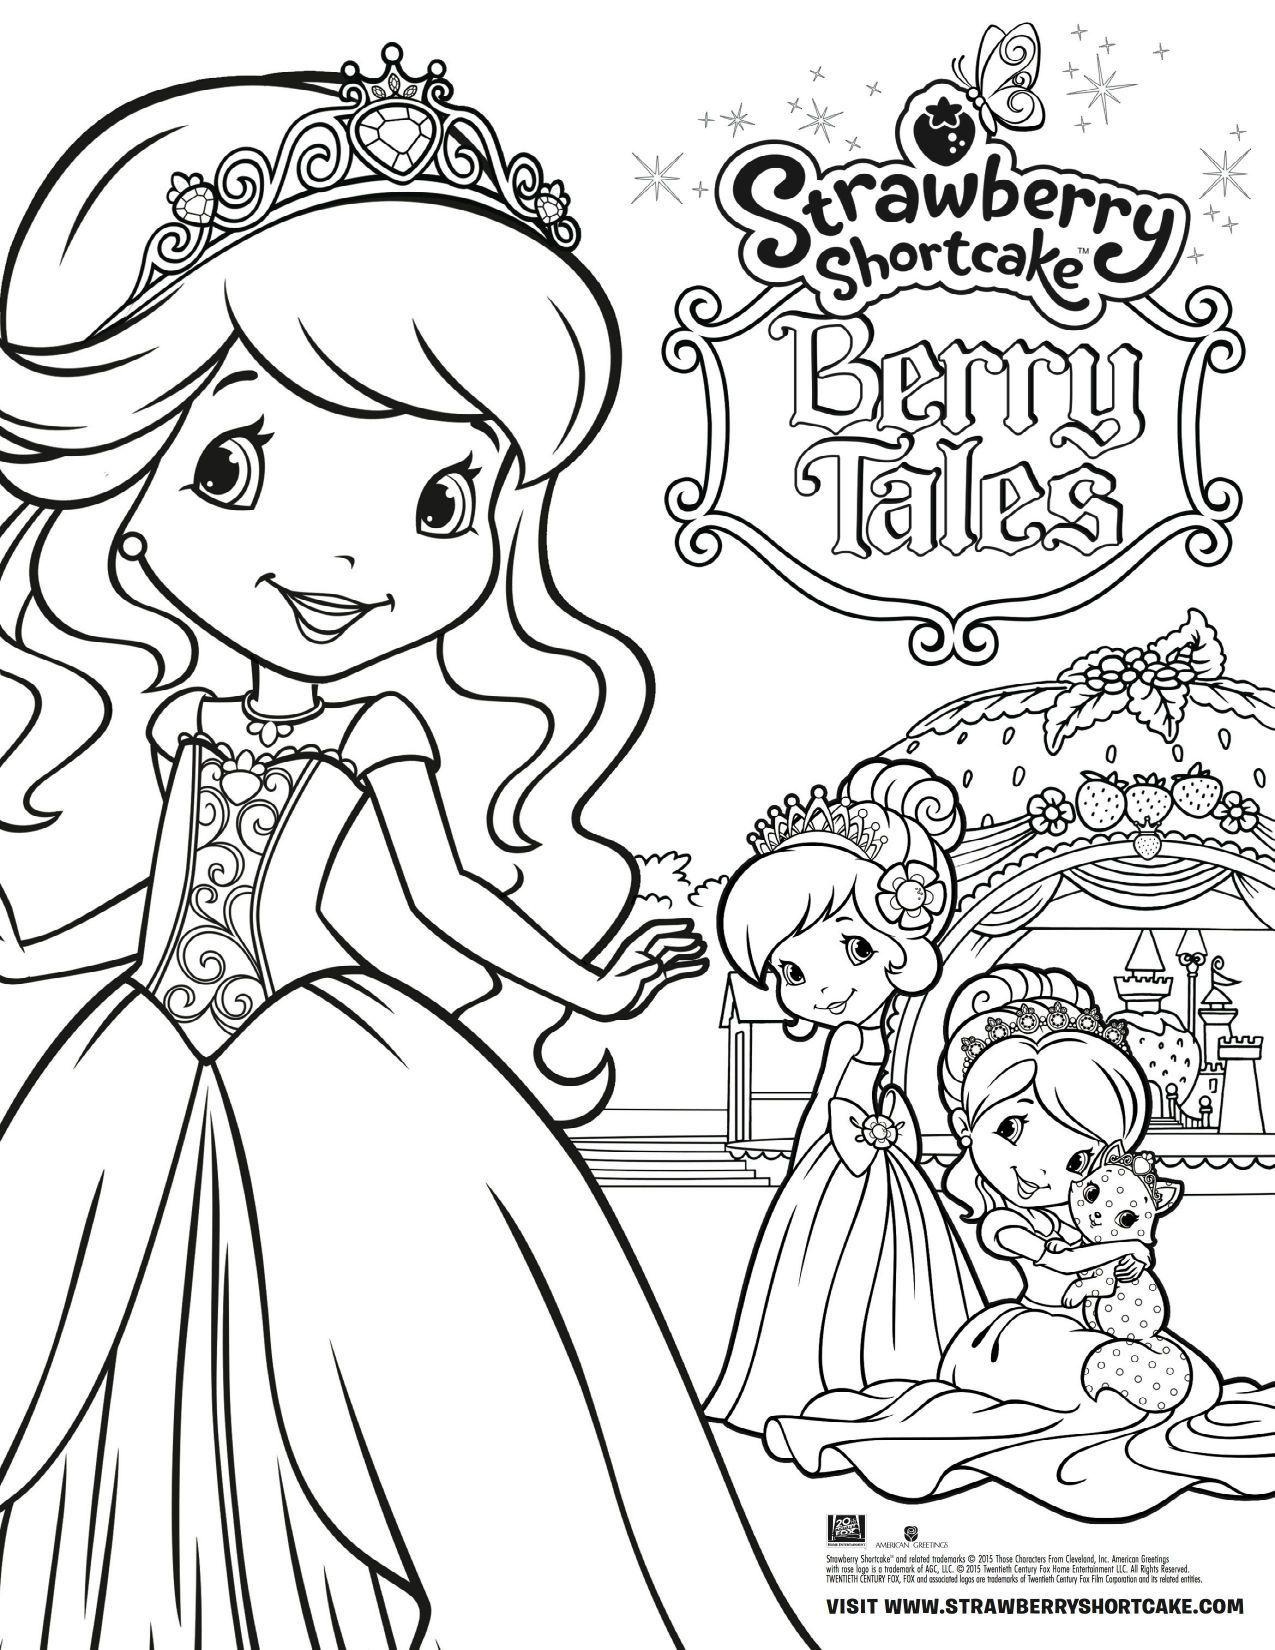 1275x1650 Appealing Strawberry Shortcake Berry Tales Coloring Page